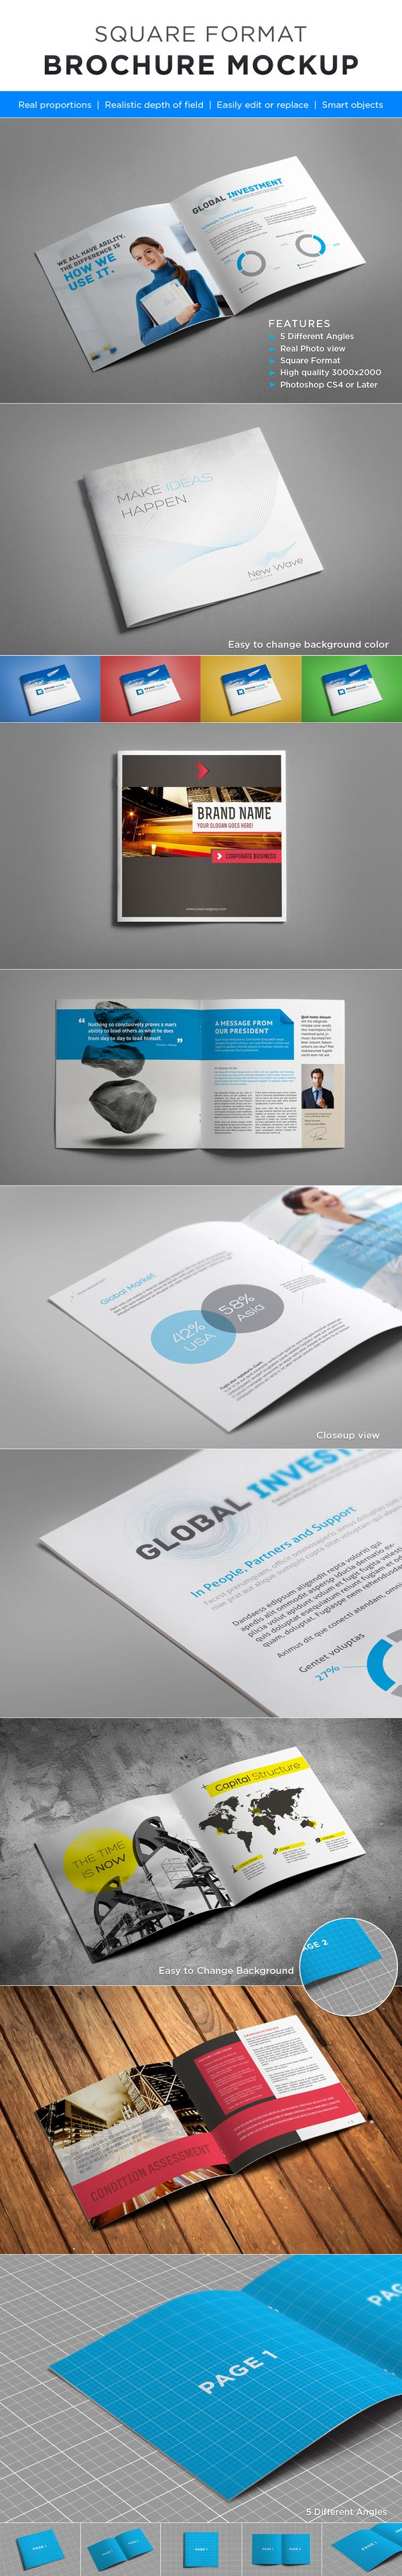 Square Brochure Mock-up on the Behance Network